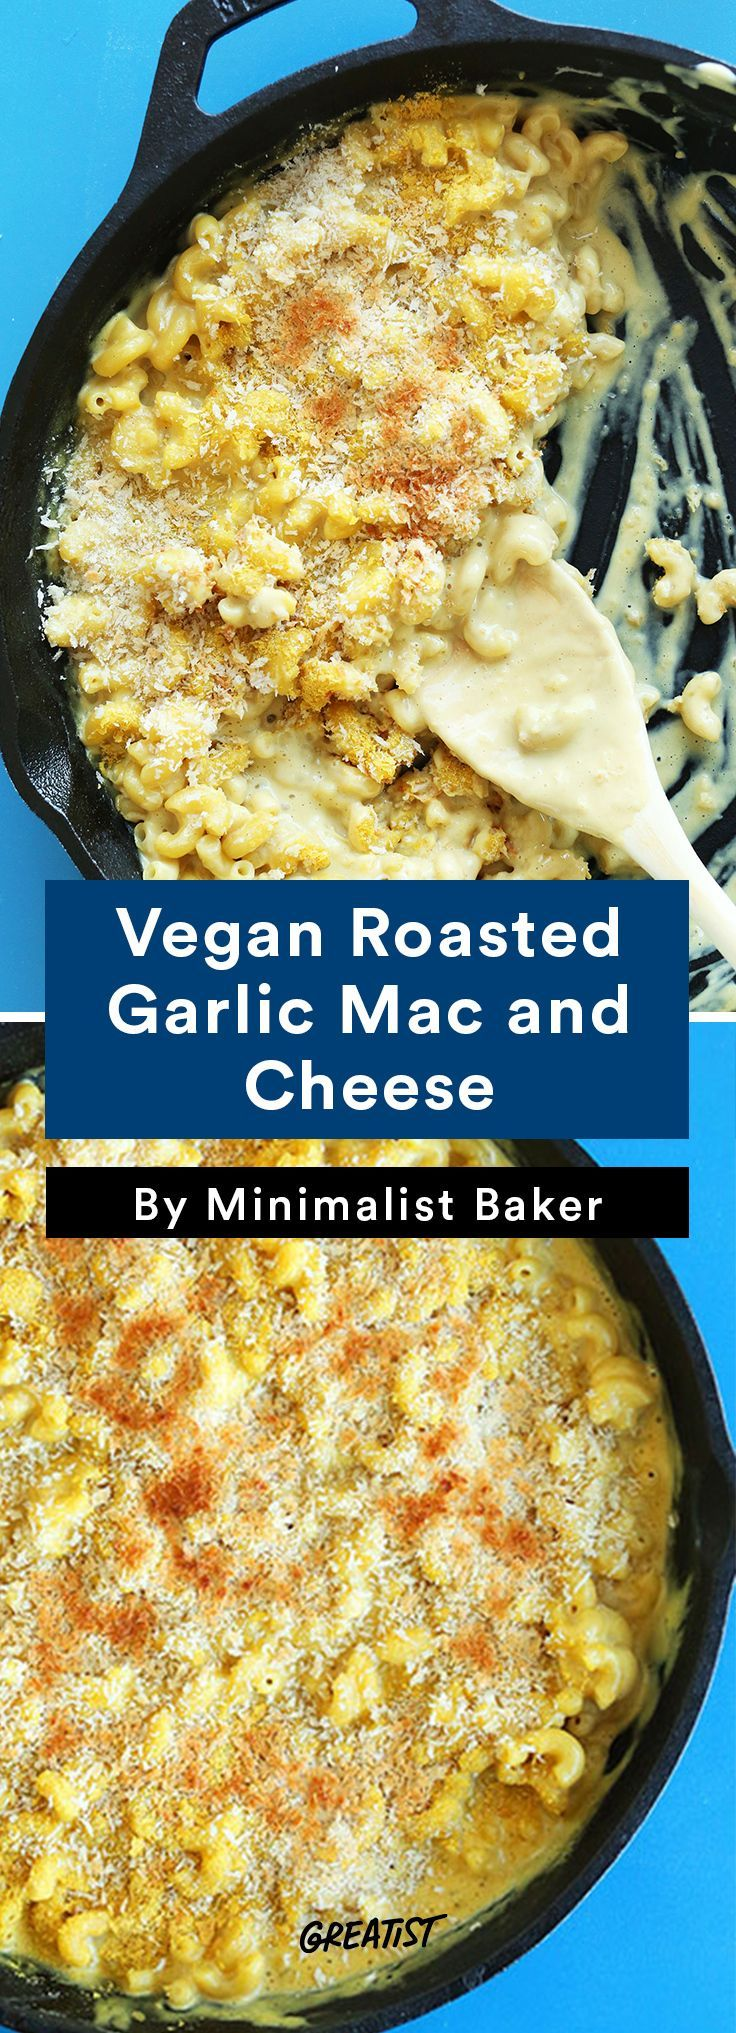 Outside the Box With These 7 Dairy-Free Mac and Cheese Recipes